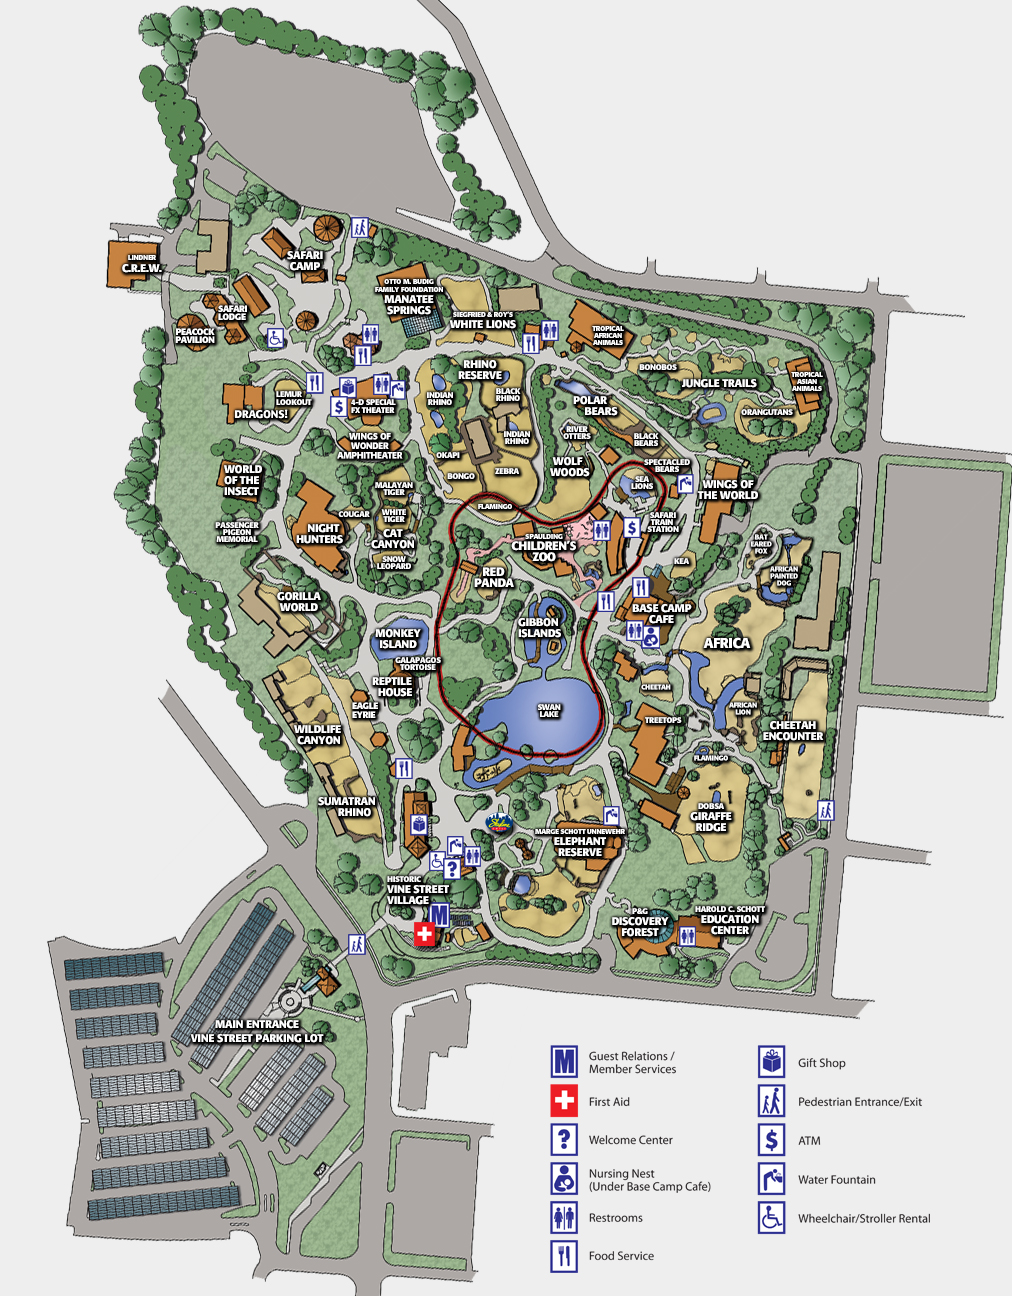 zoo map - the cincinnati zoo & botanical garden